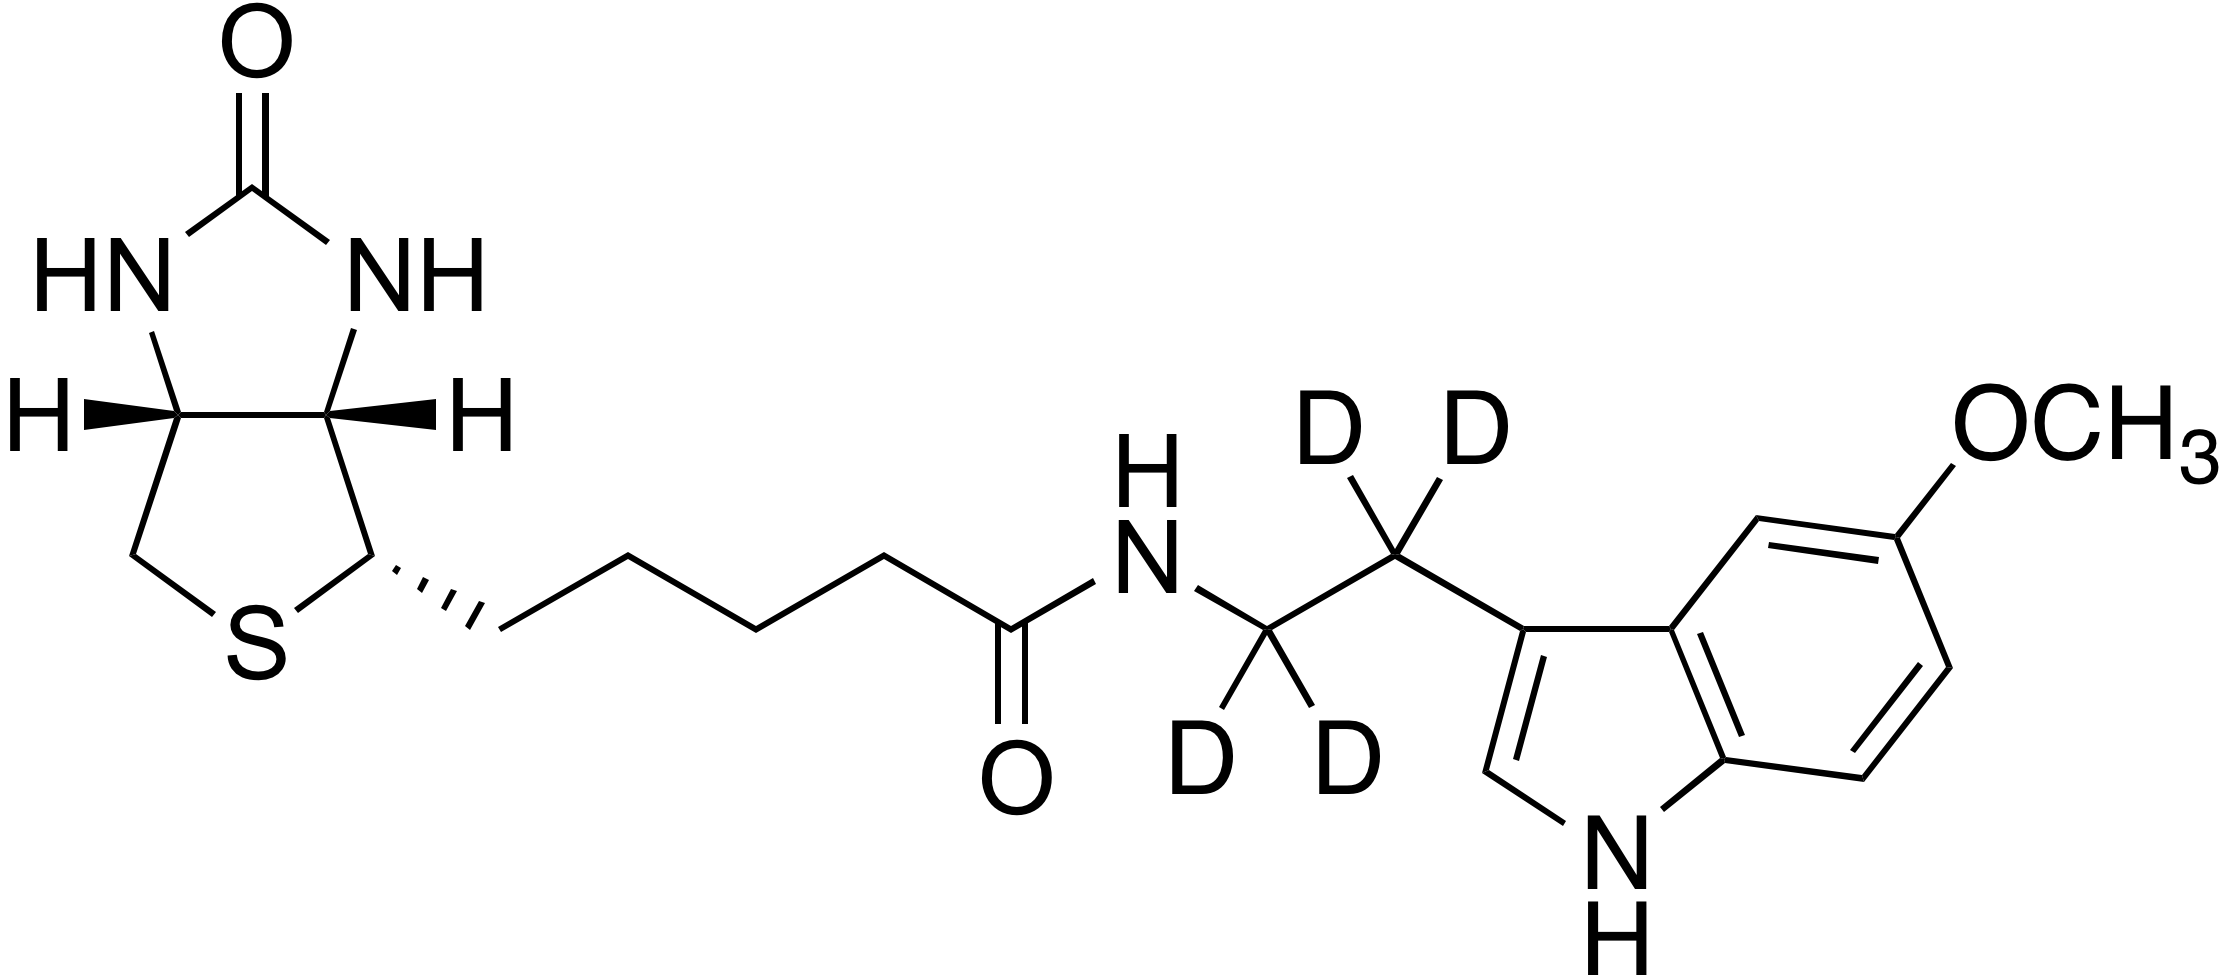 N-Biotinyl-5-methoxytryptamine-d<sub>4</sub>